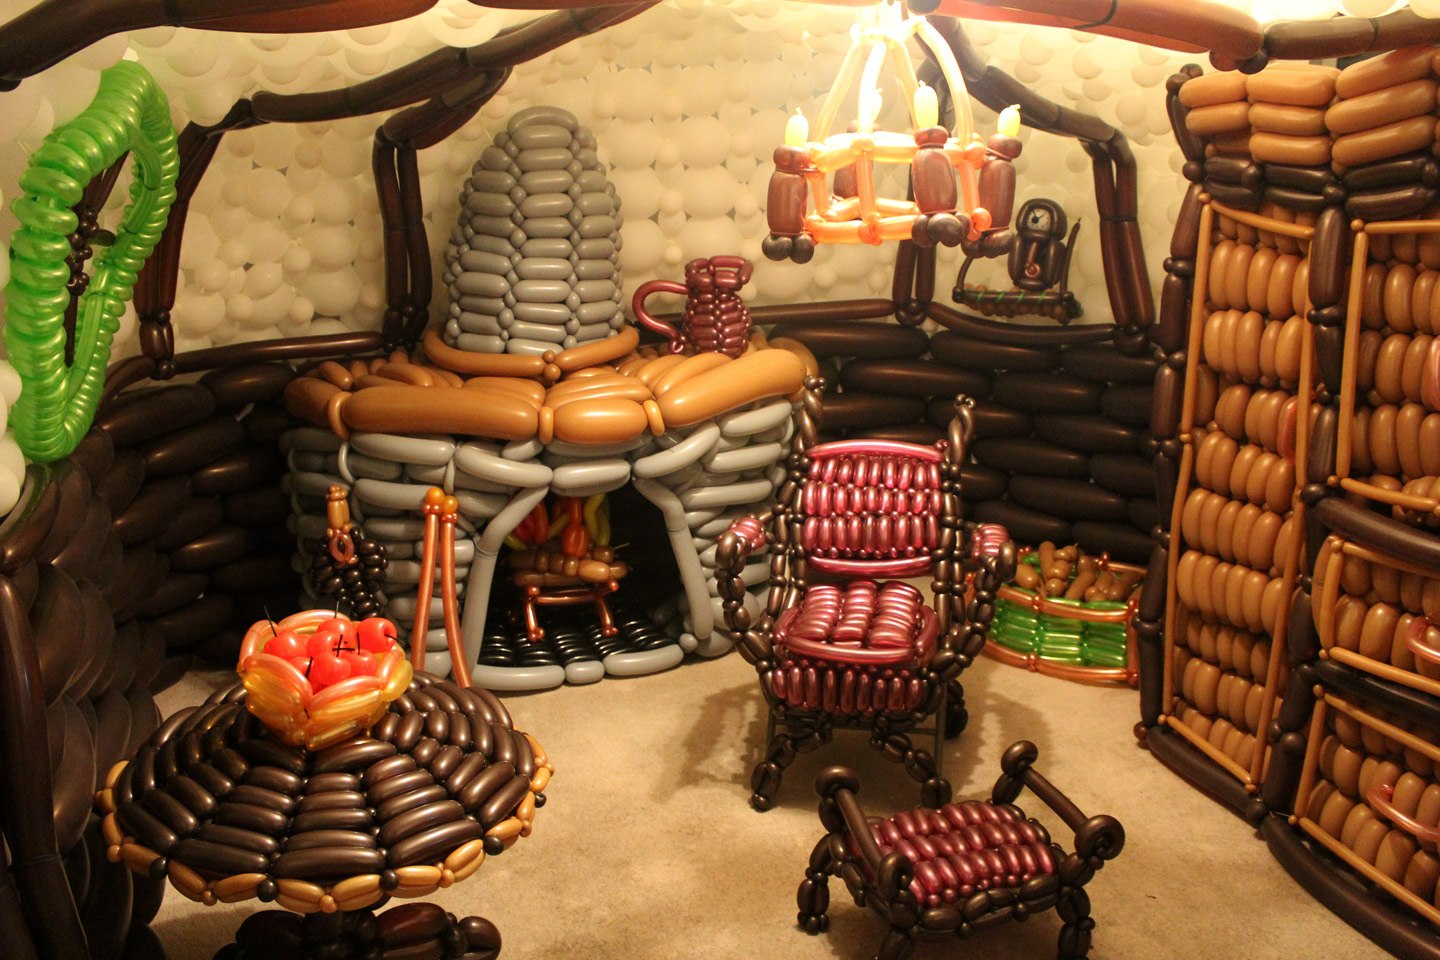 balloon guy le hobbit tolkiendrim. Black Bedroom Furniture Sets. Home Design Ideas